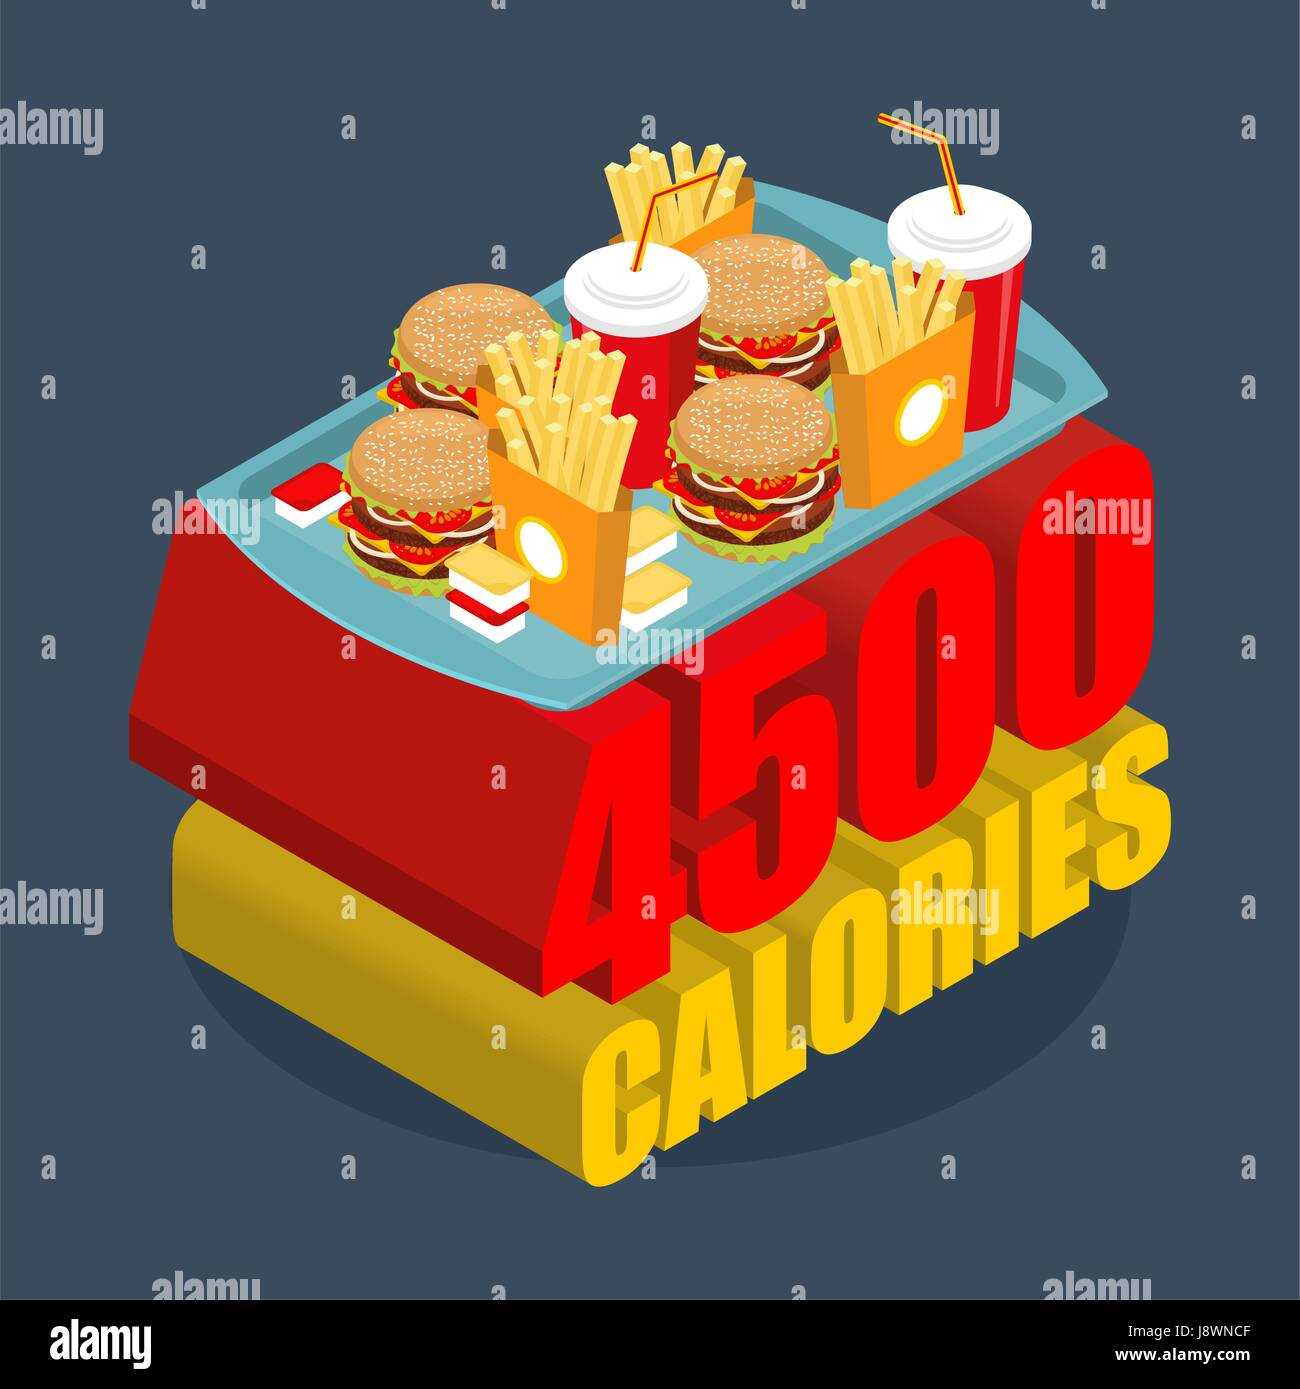 Fast food calorie range. Many of junk food. Hamburgers and french frying. Cheese sauce and ketchup. Most Energetic - Stock Vector